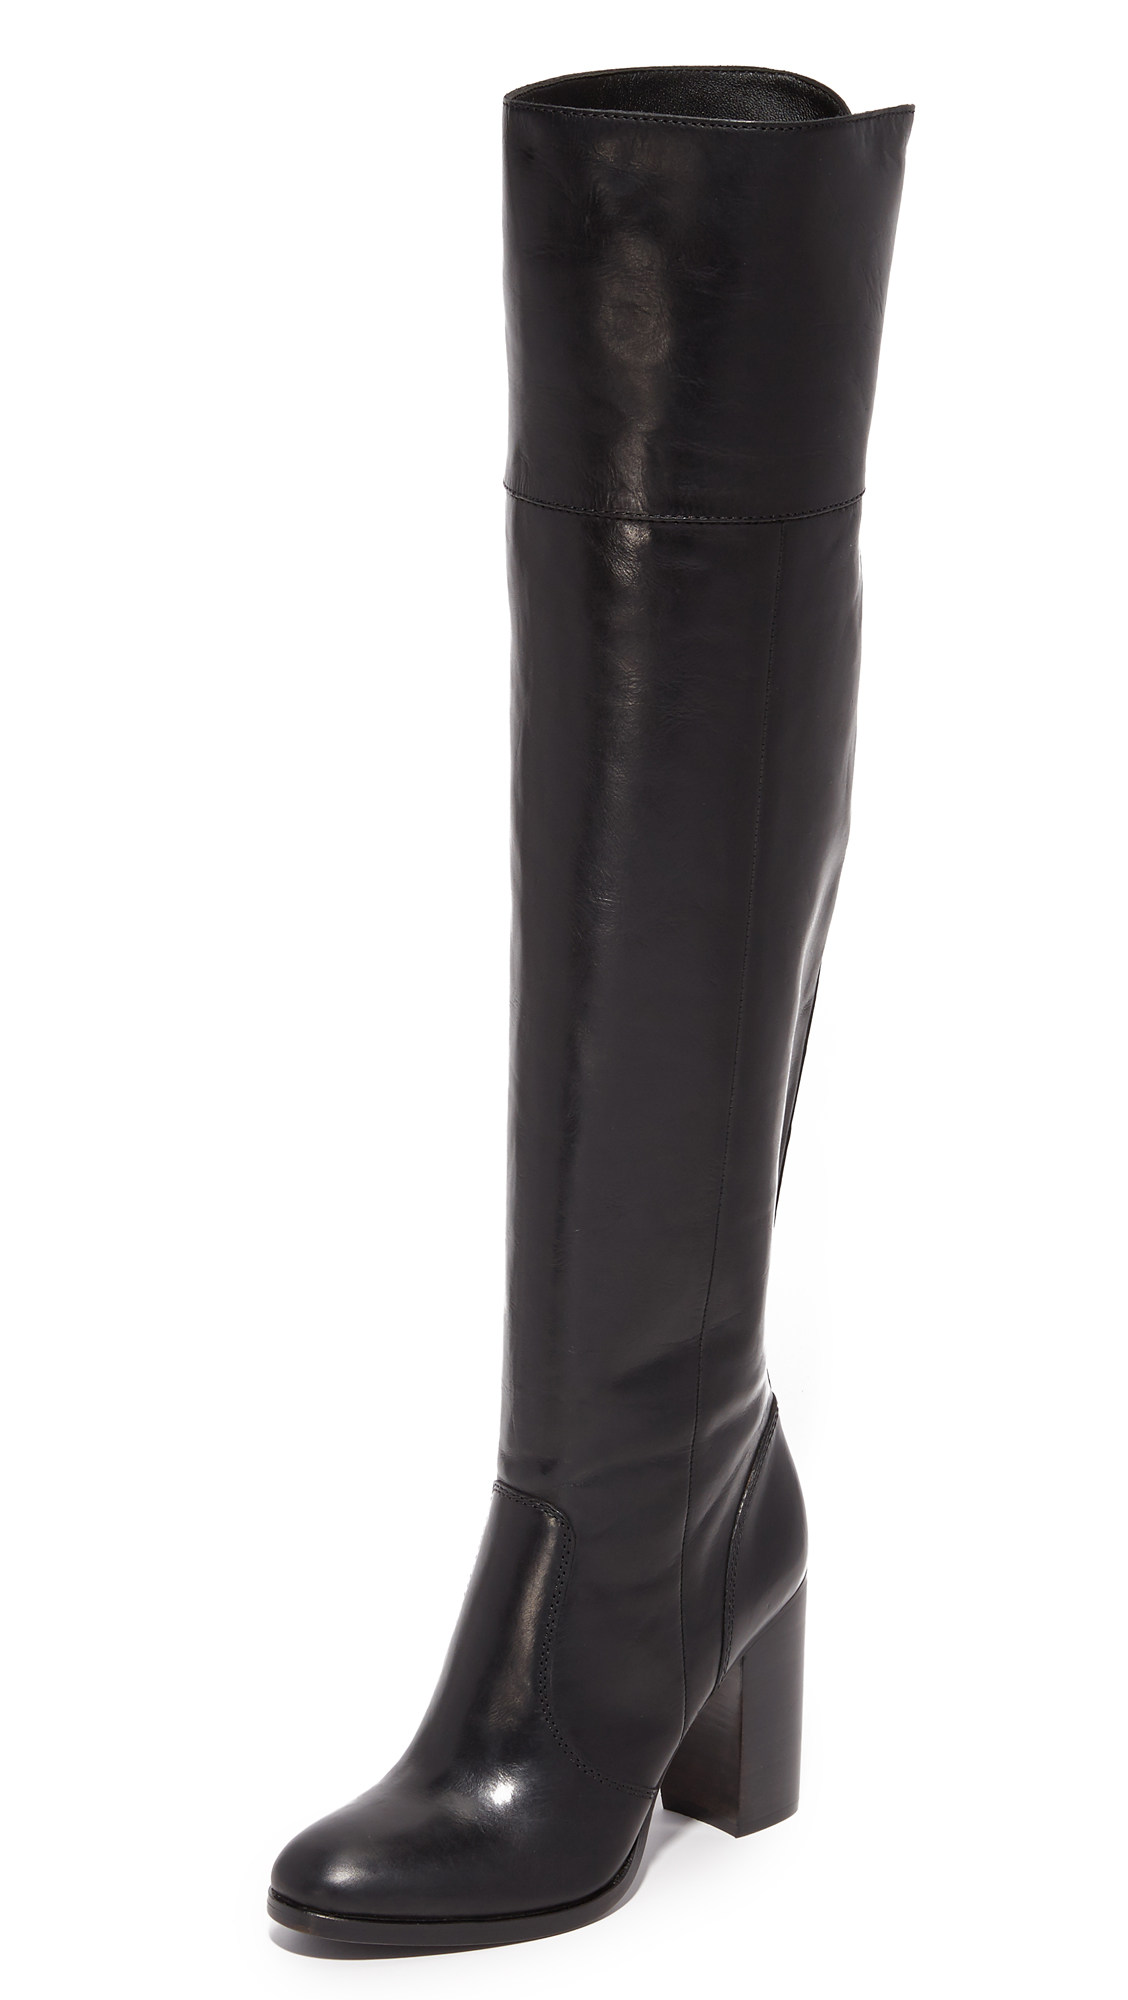 Frye Claude Over The Knee Boots - Black